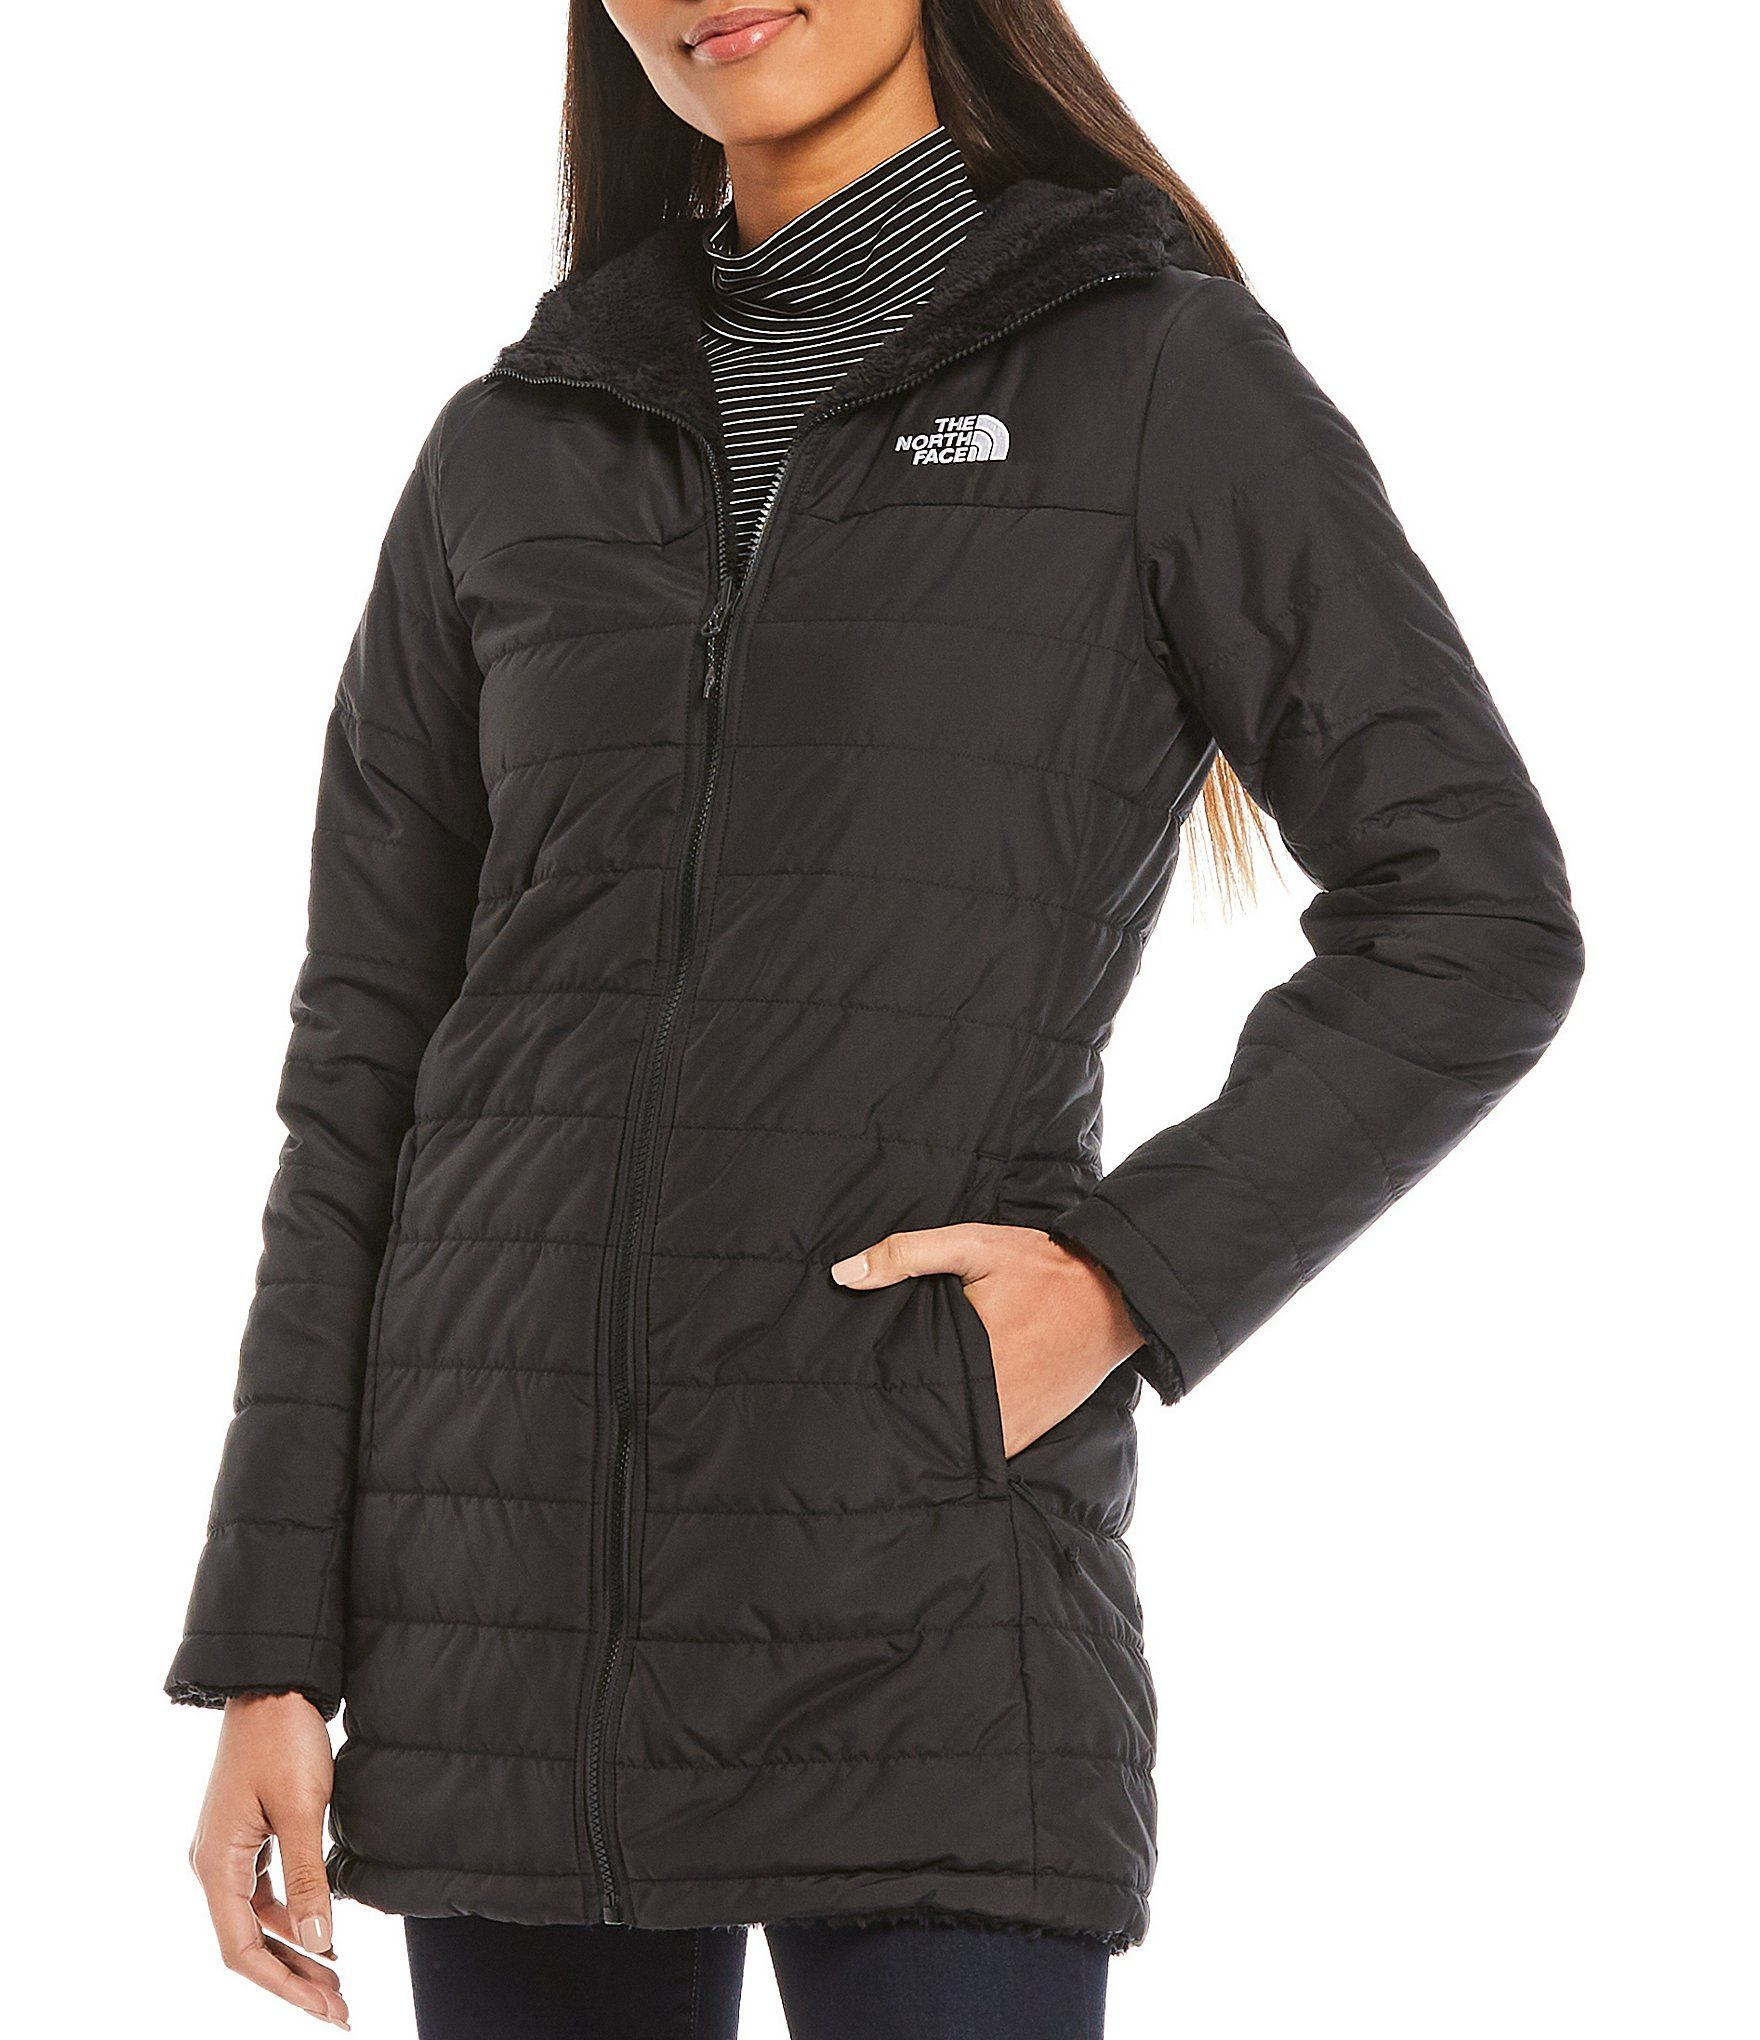 The North Face Mossbud Faux Fur Fleece Lined Insulated Reversible Hooded Parka Dillard S North Face Mossbud North Face Parka Hooded Parka [ 2040 x 1760 Pixel ]